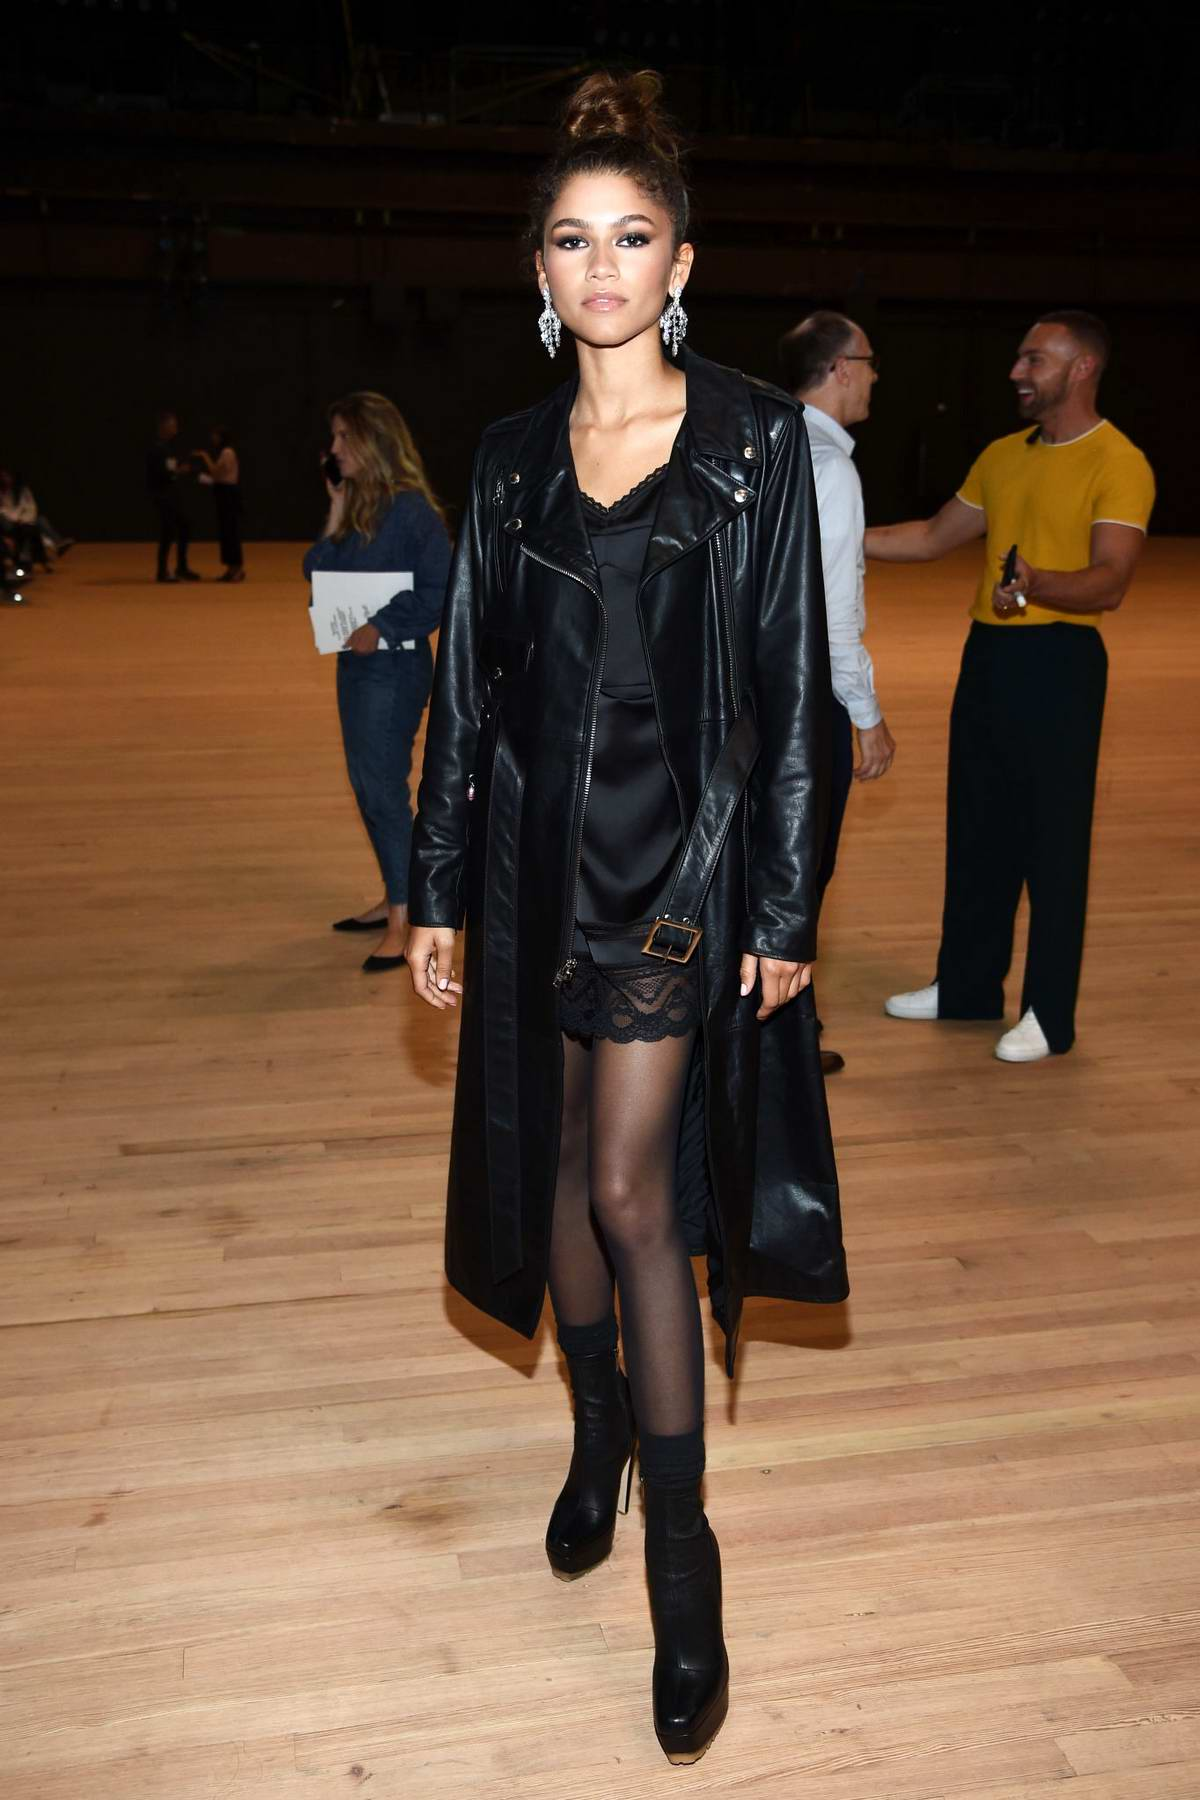 Zendaya attends the Marc Jacobs Spring 2020 Show during New York Fashion Week at Park Avenue Armory in New York City